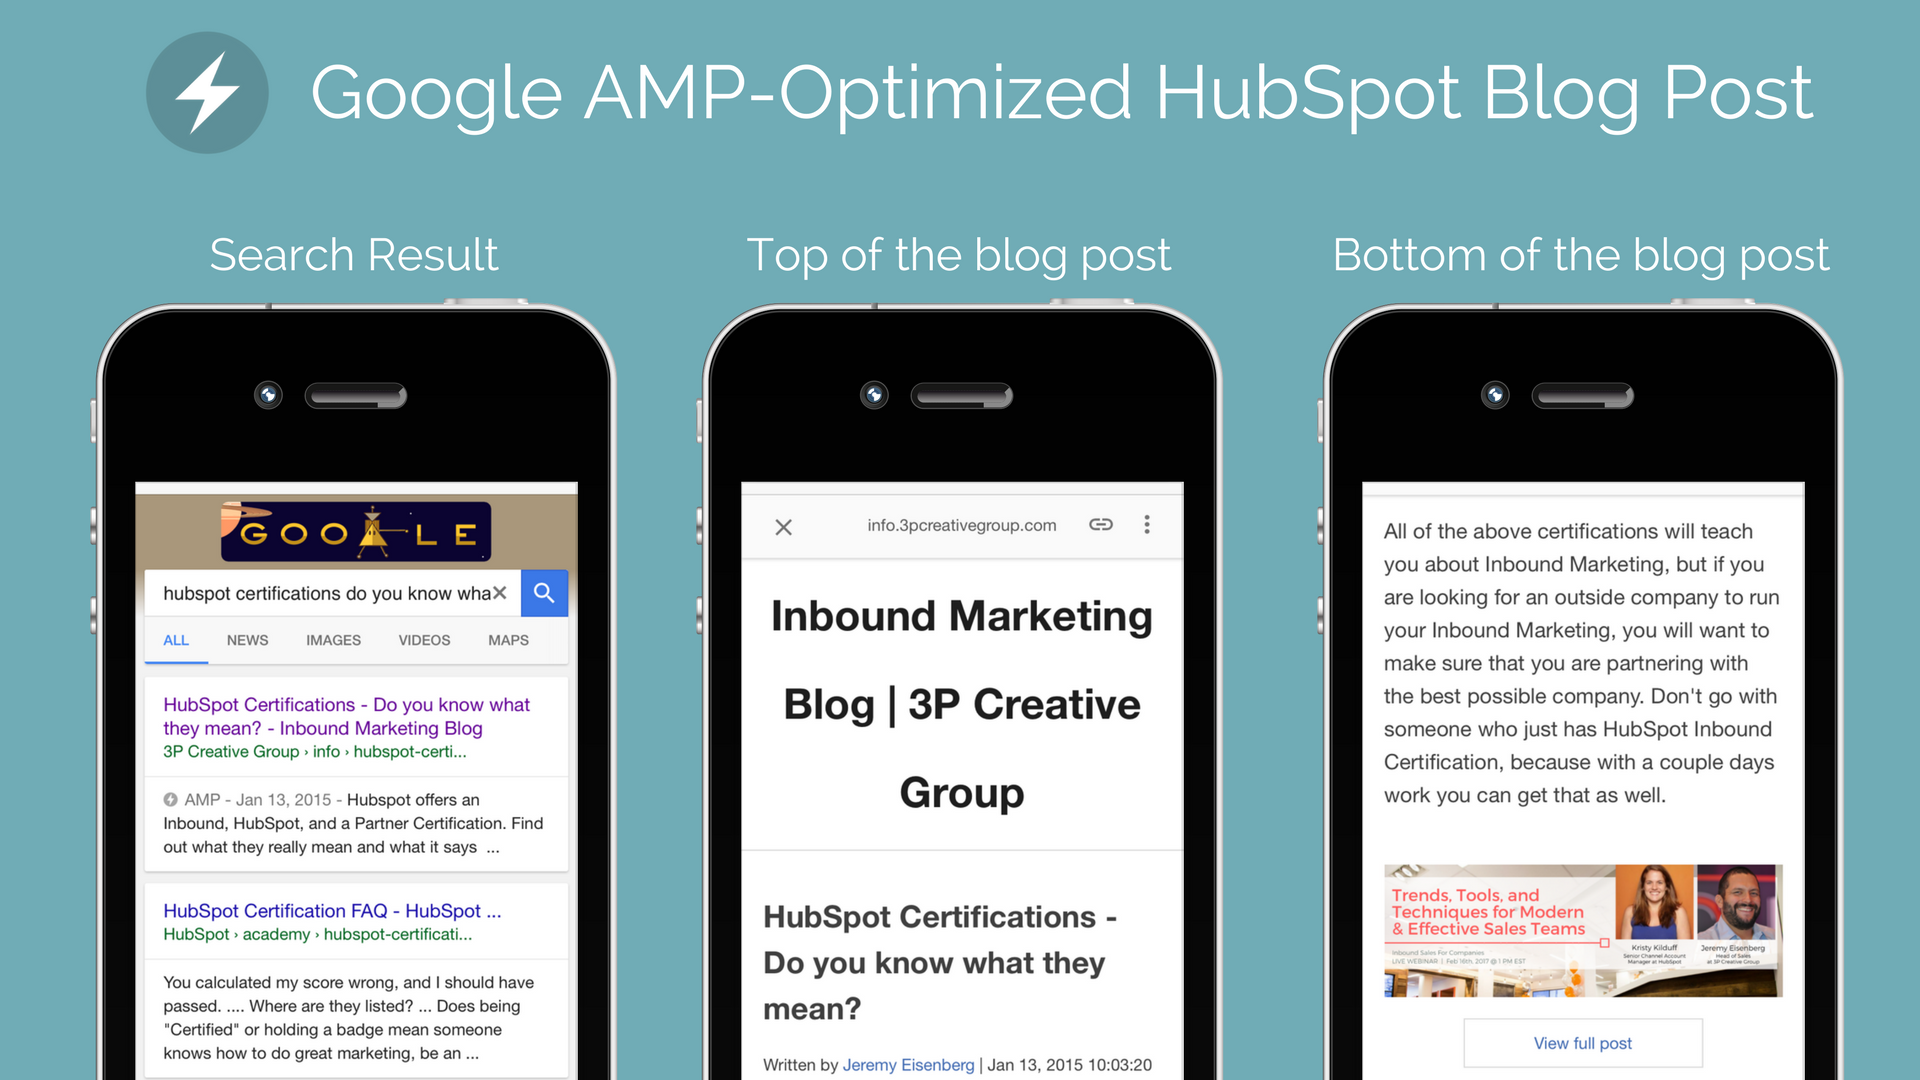 Google AMP-Optimized HubSpot Blog Post.png